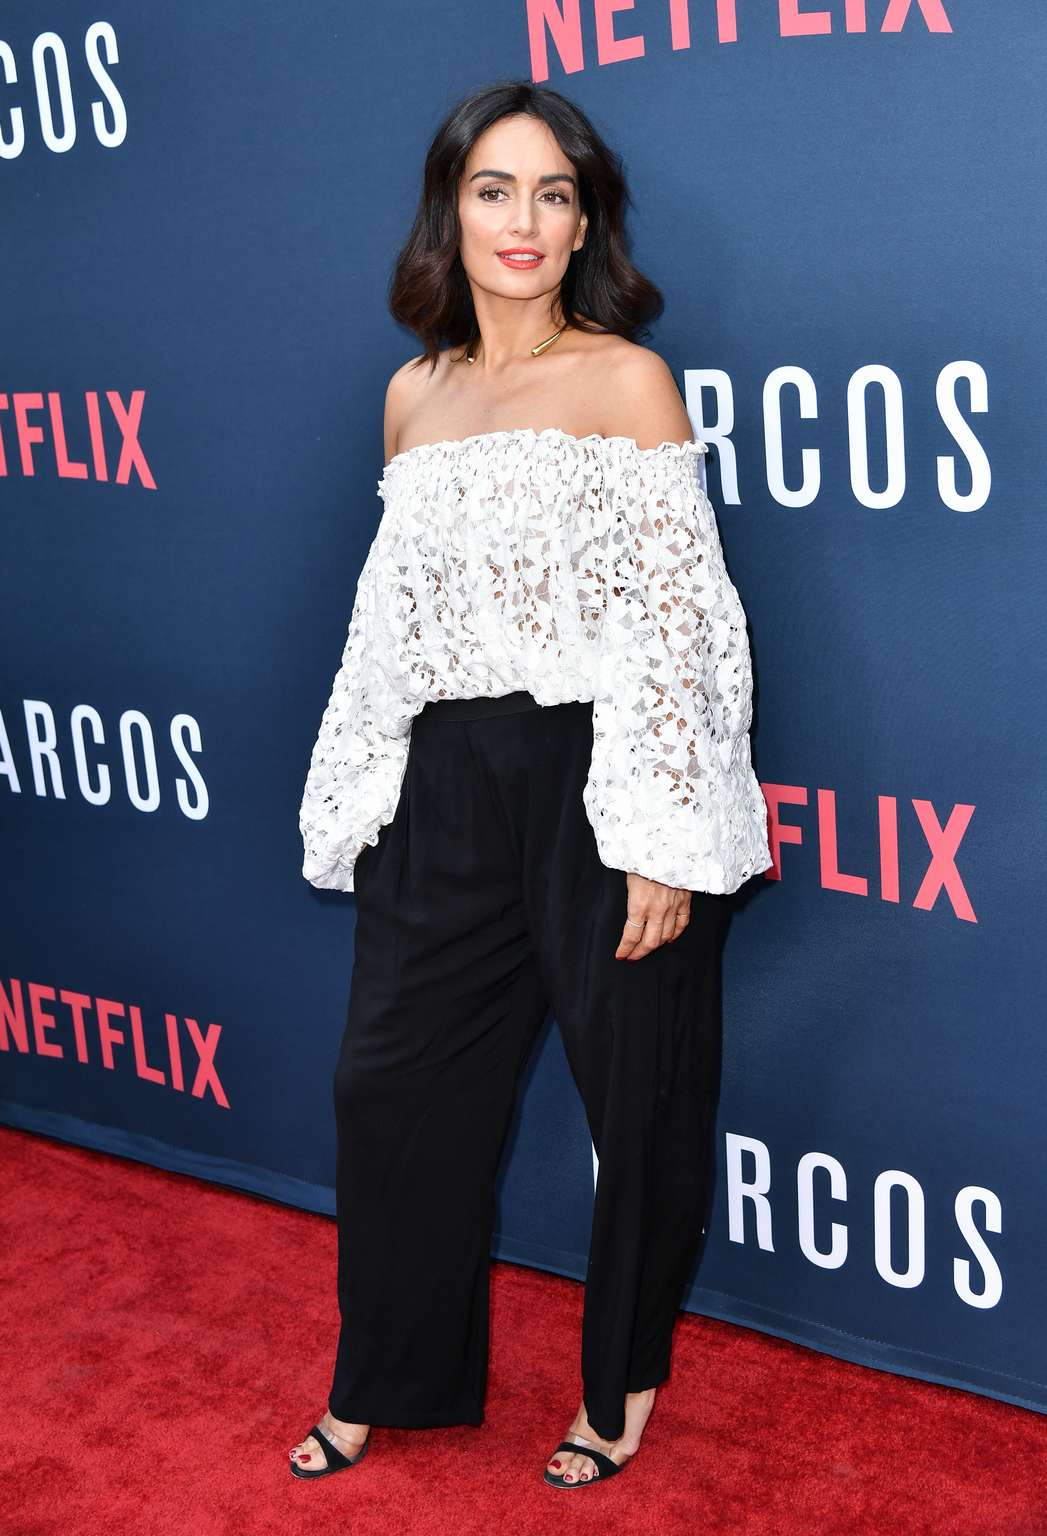 Hottest actress Ana de la Reguera – Netflix's Narcos Season 2 Premiere in Hollywood, LA on August 24, 2016